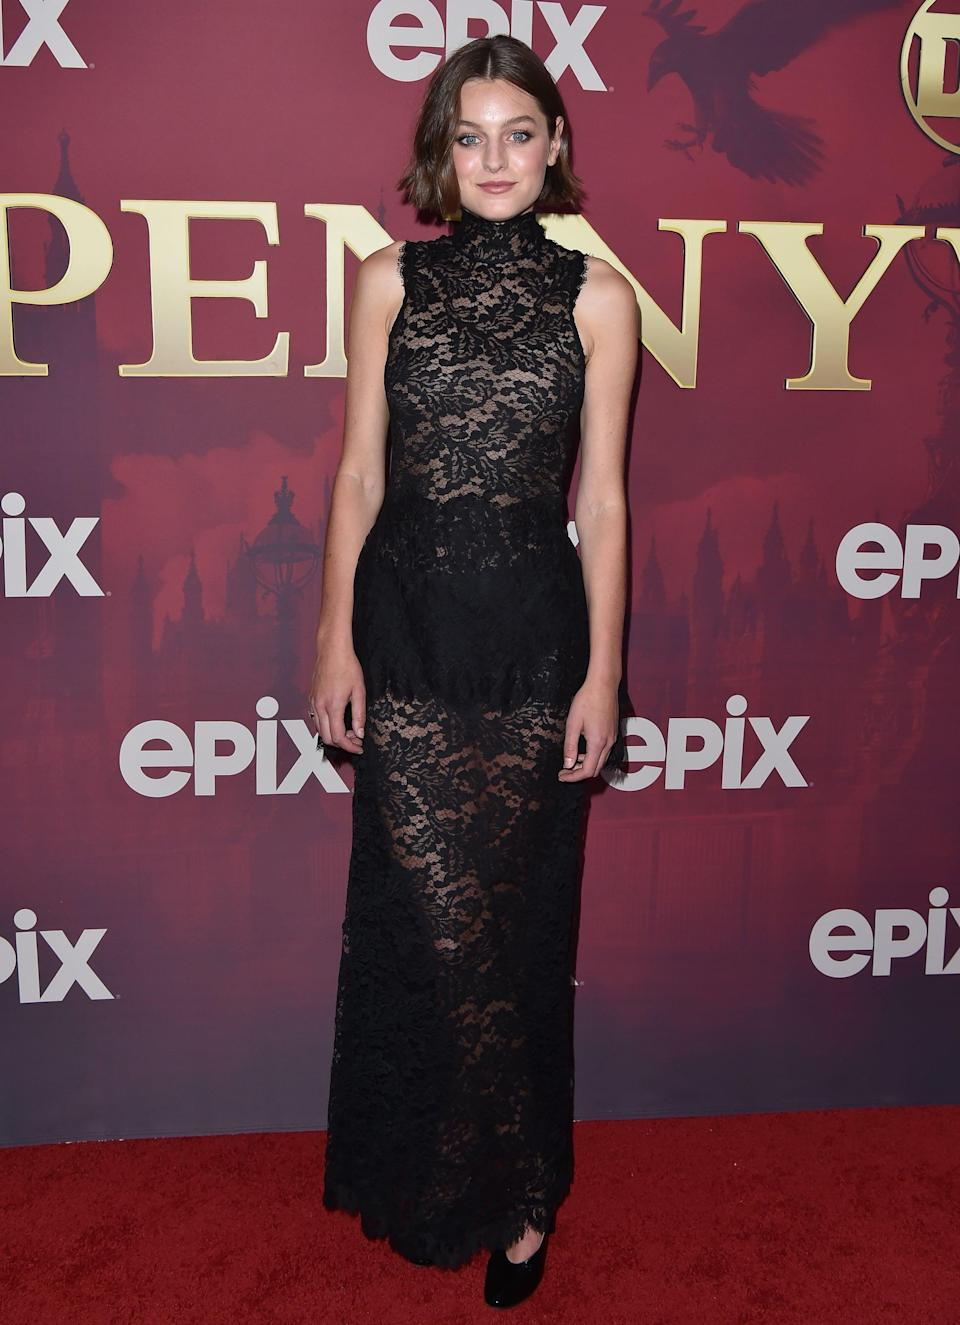 <p>Emma Corrin wore a sheer, black lace Chanel maxi dress to the 2019 premiere of <strong>Pennyworth</strong> in Los Angeles.</p>